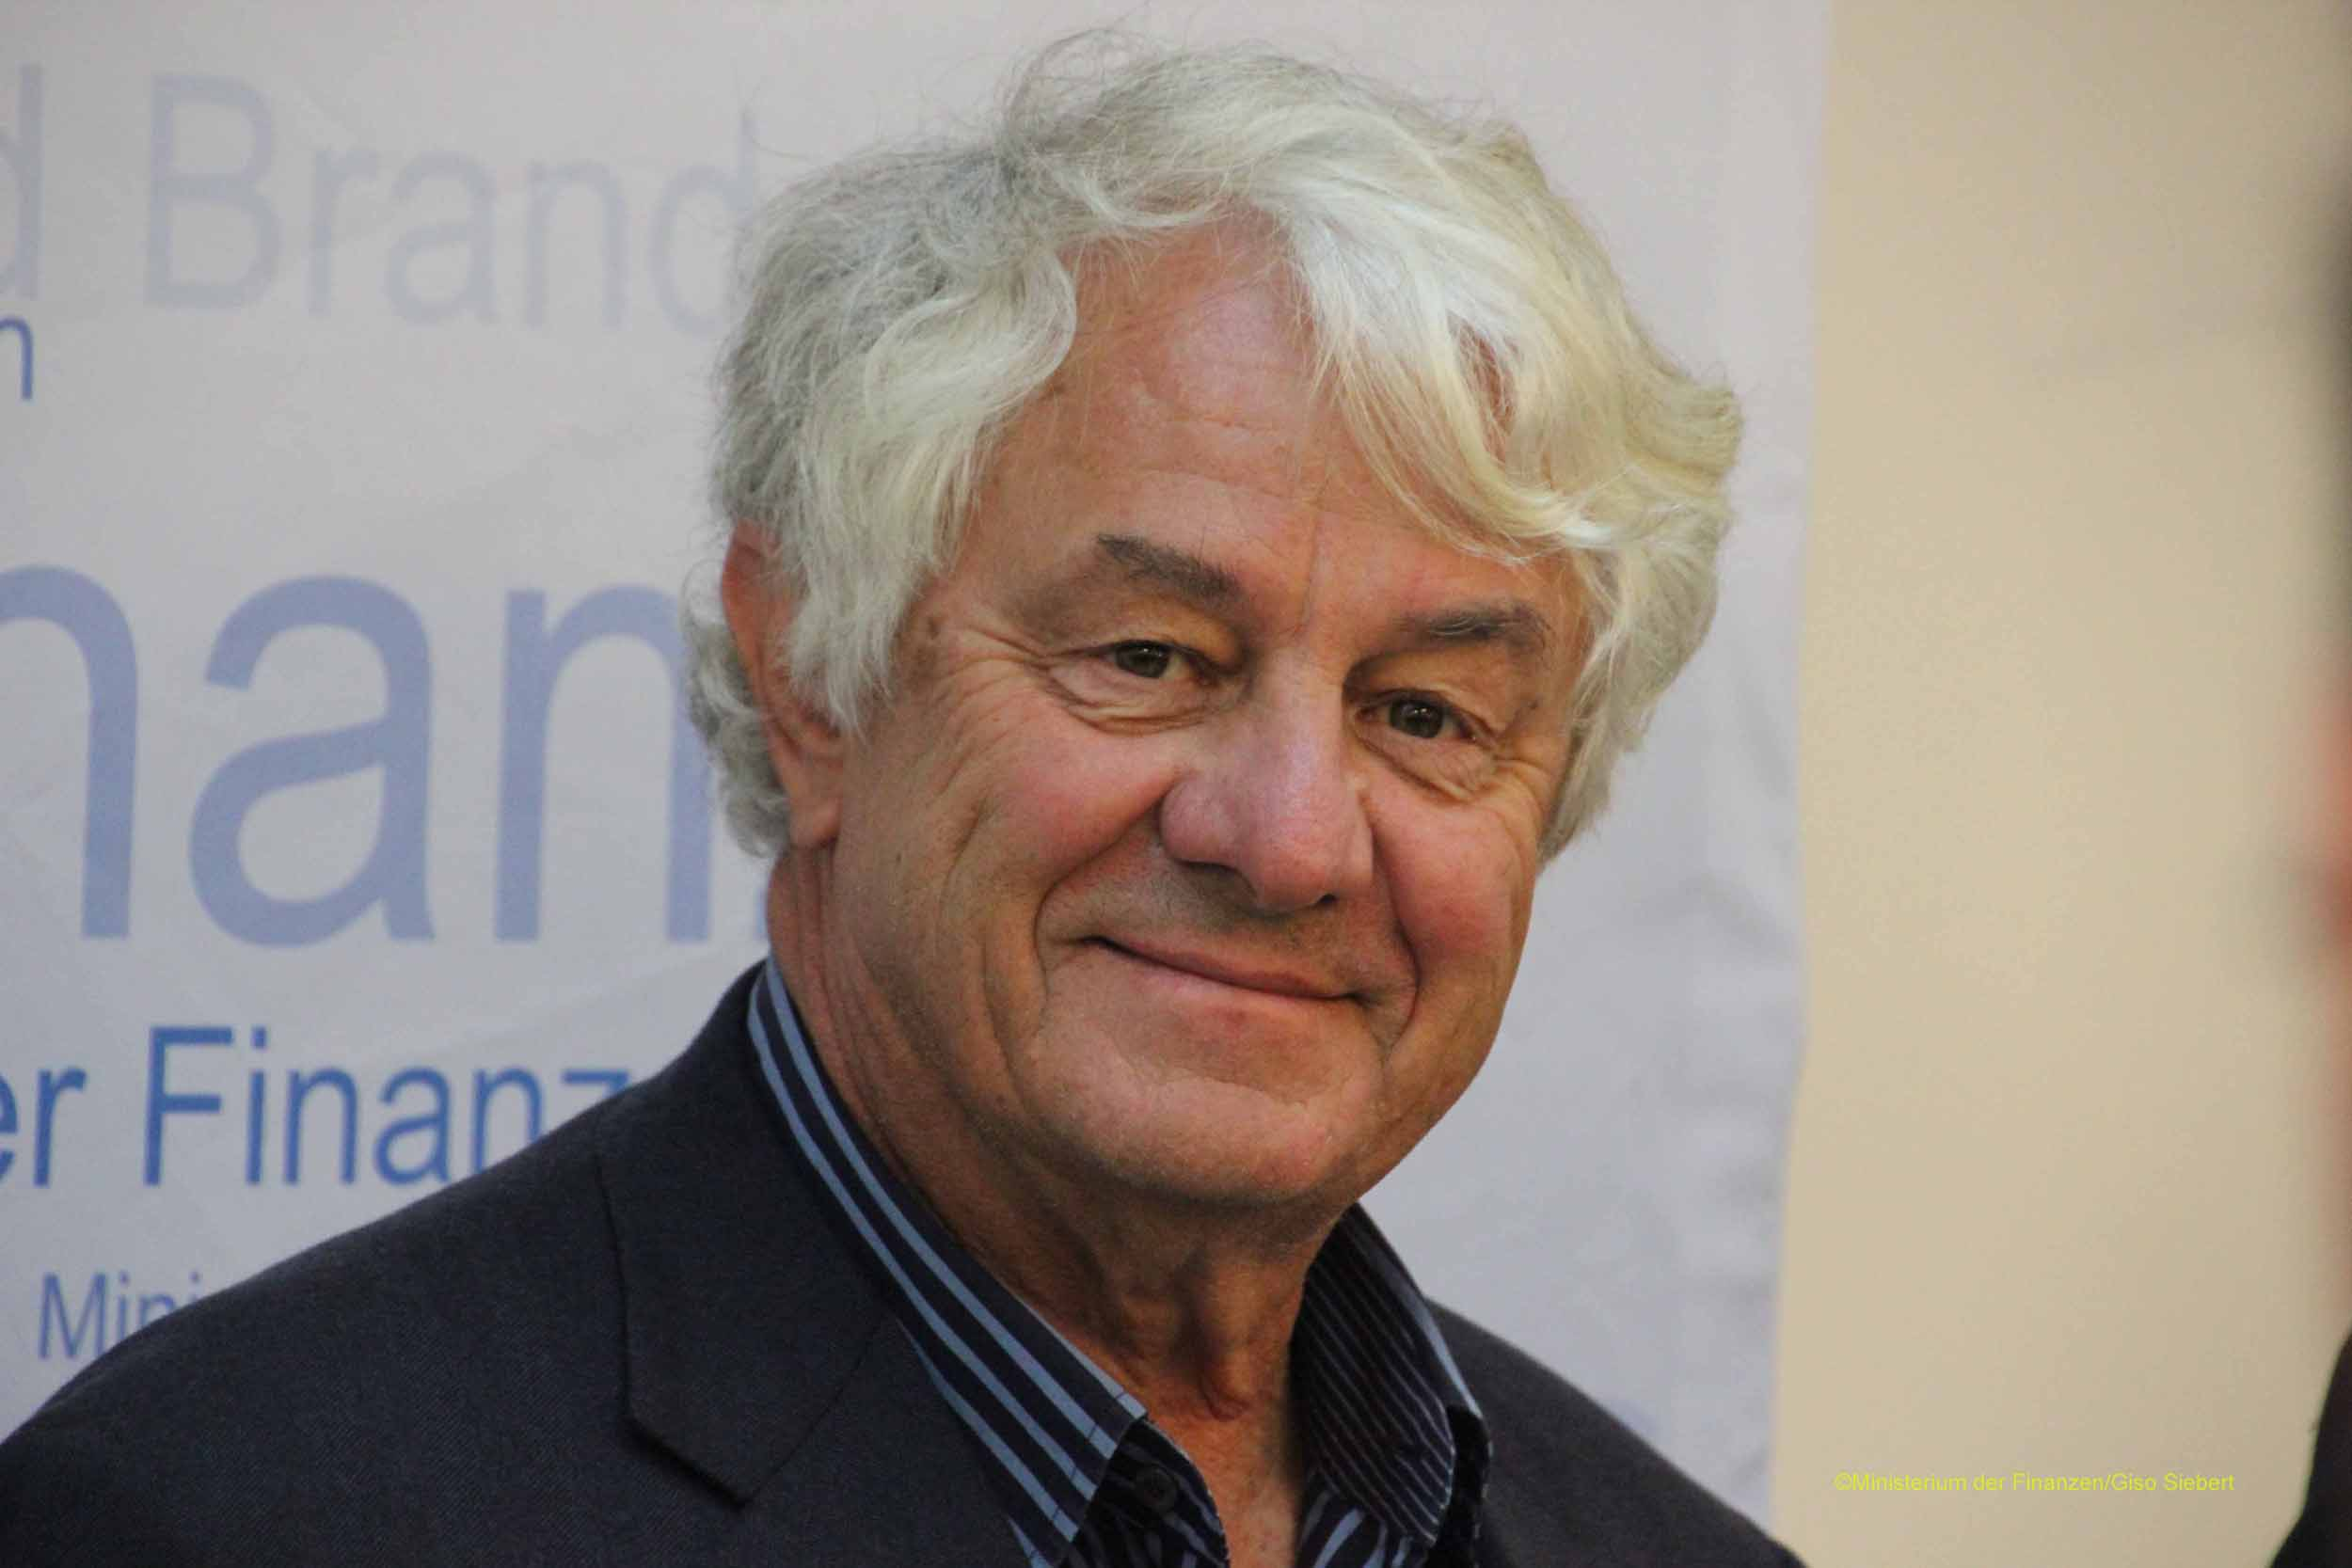 Hasso plattner Career